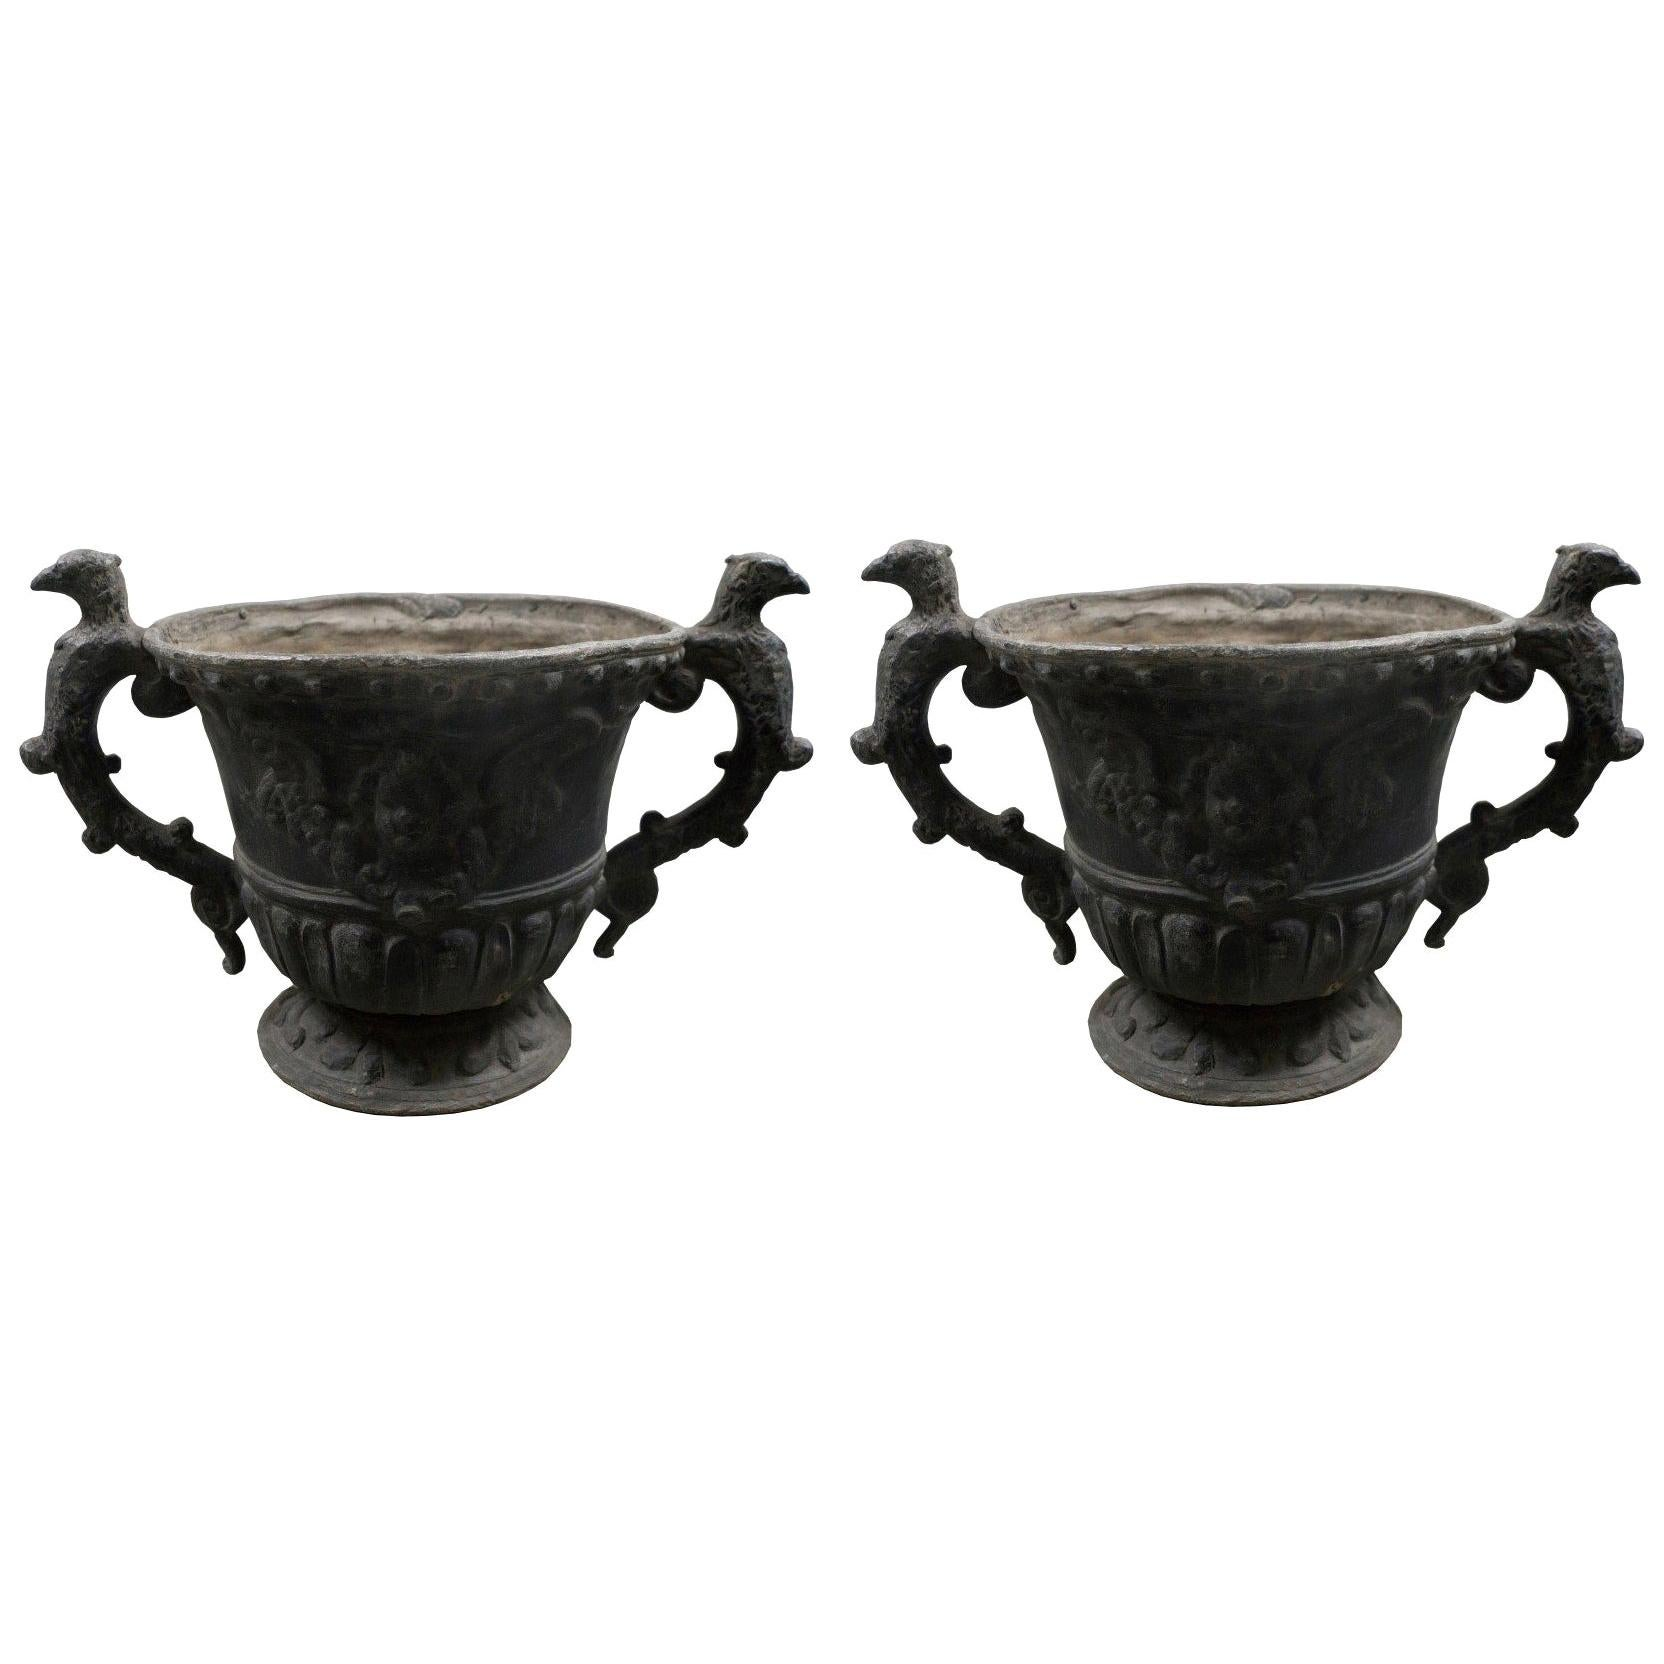 Pair of Midcentury English Round Lead Planters with Handles